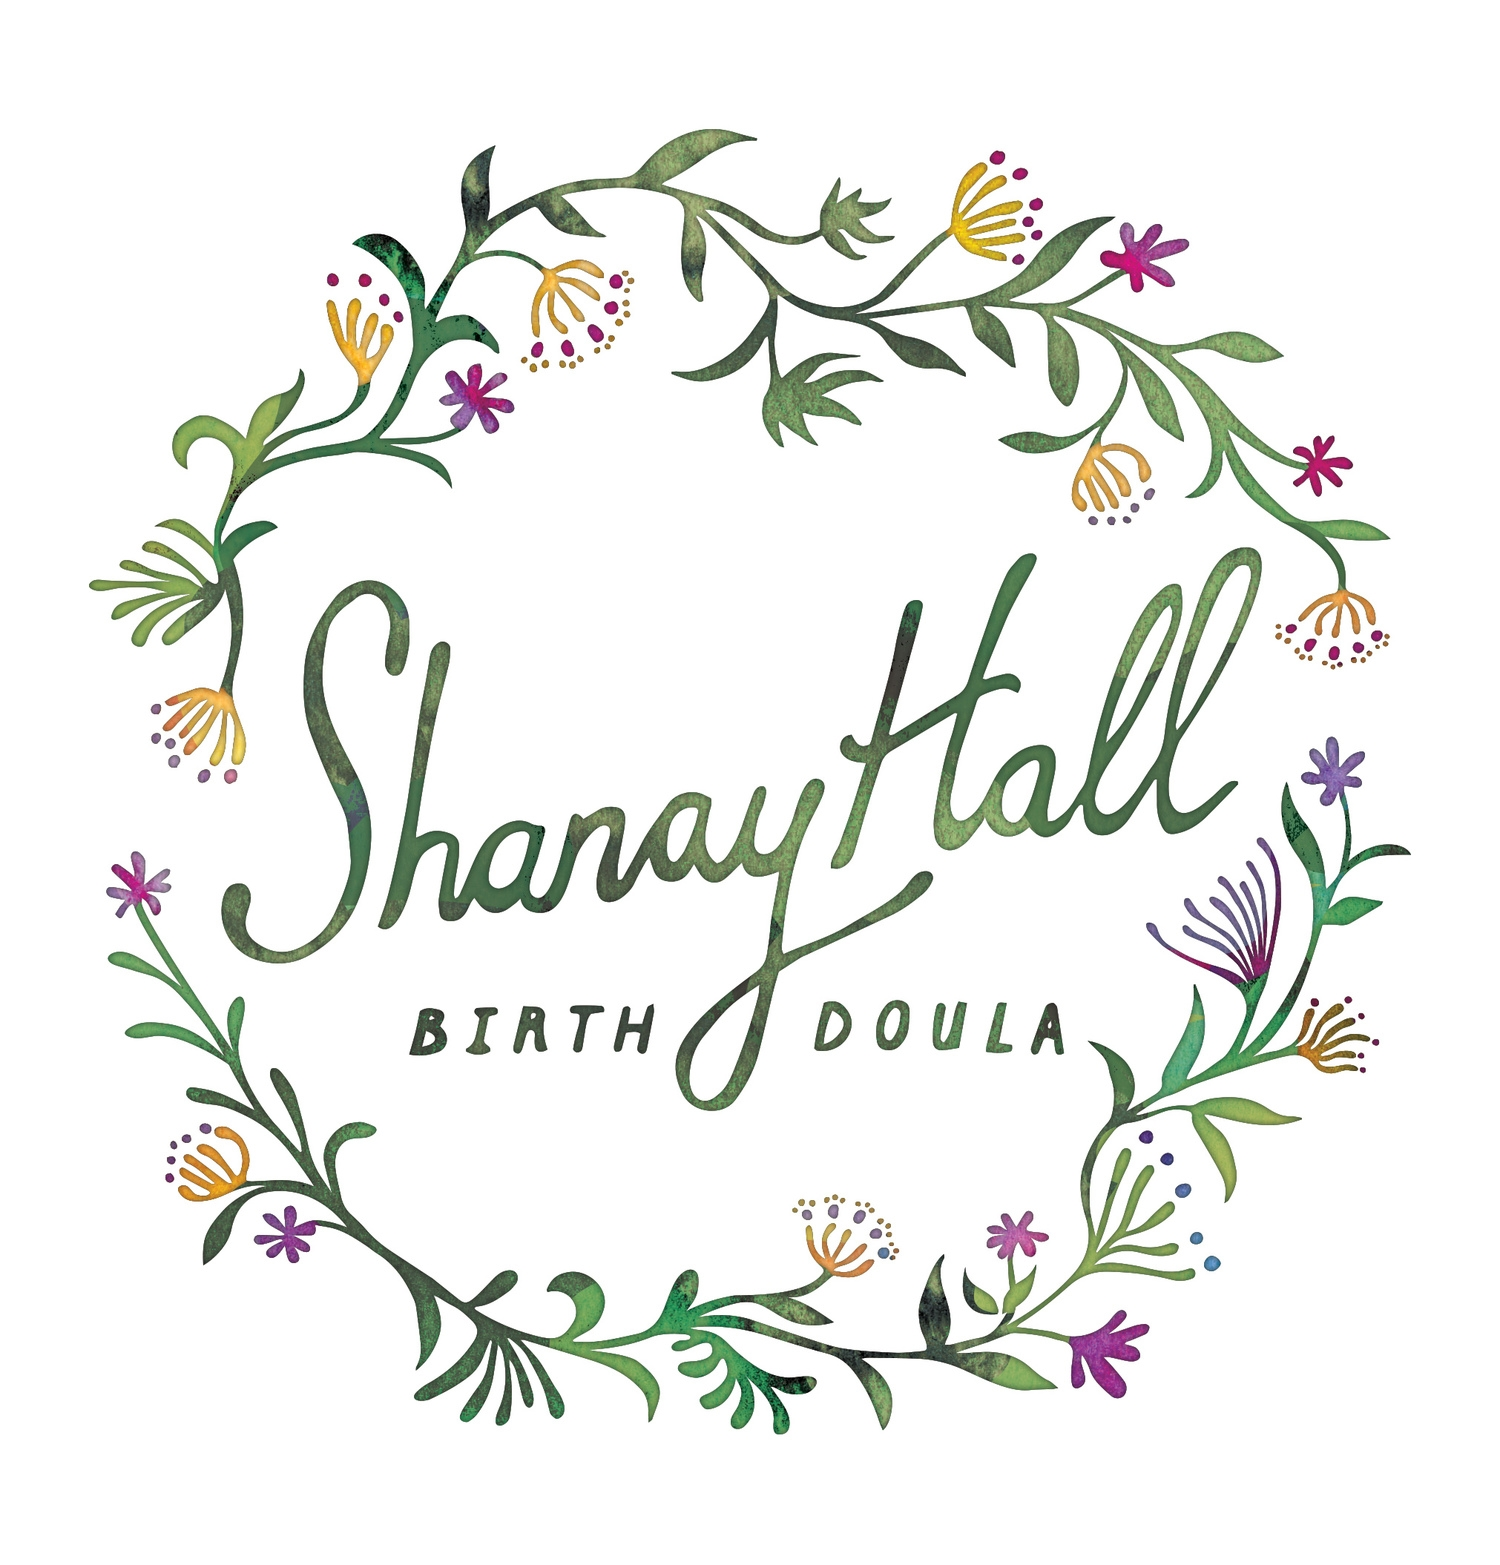 Shanay the Doula